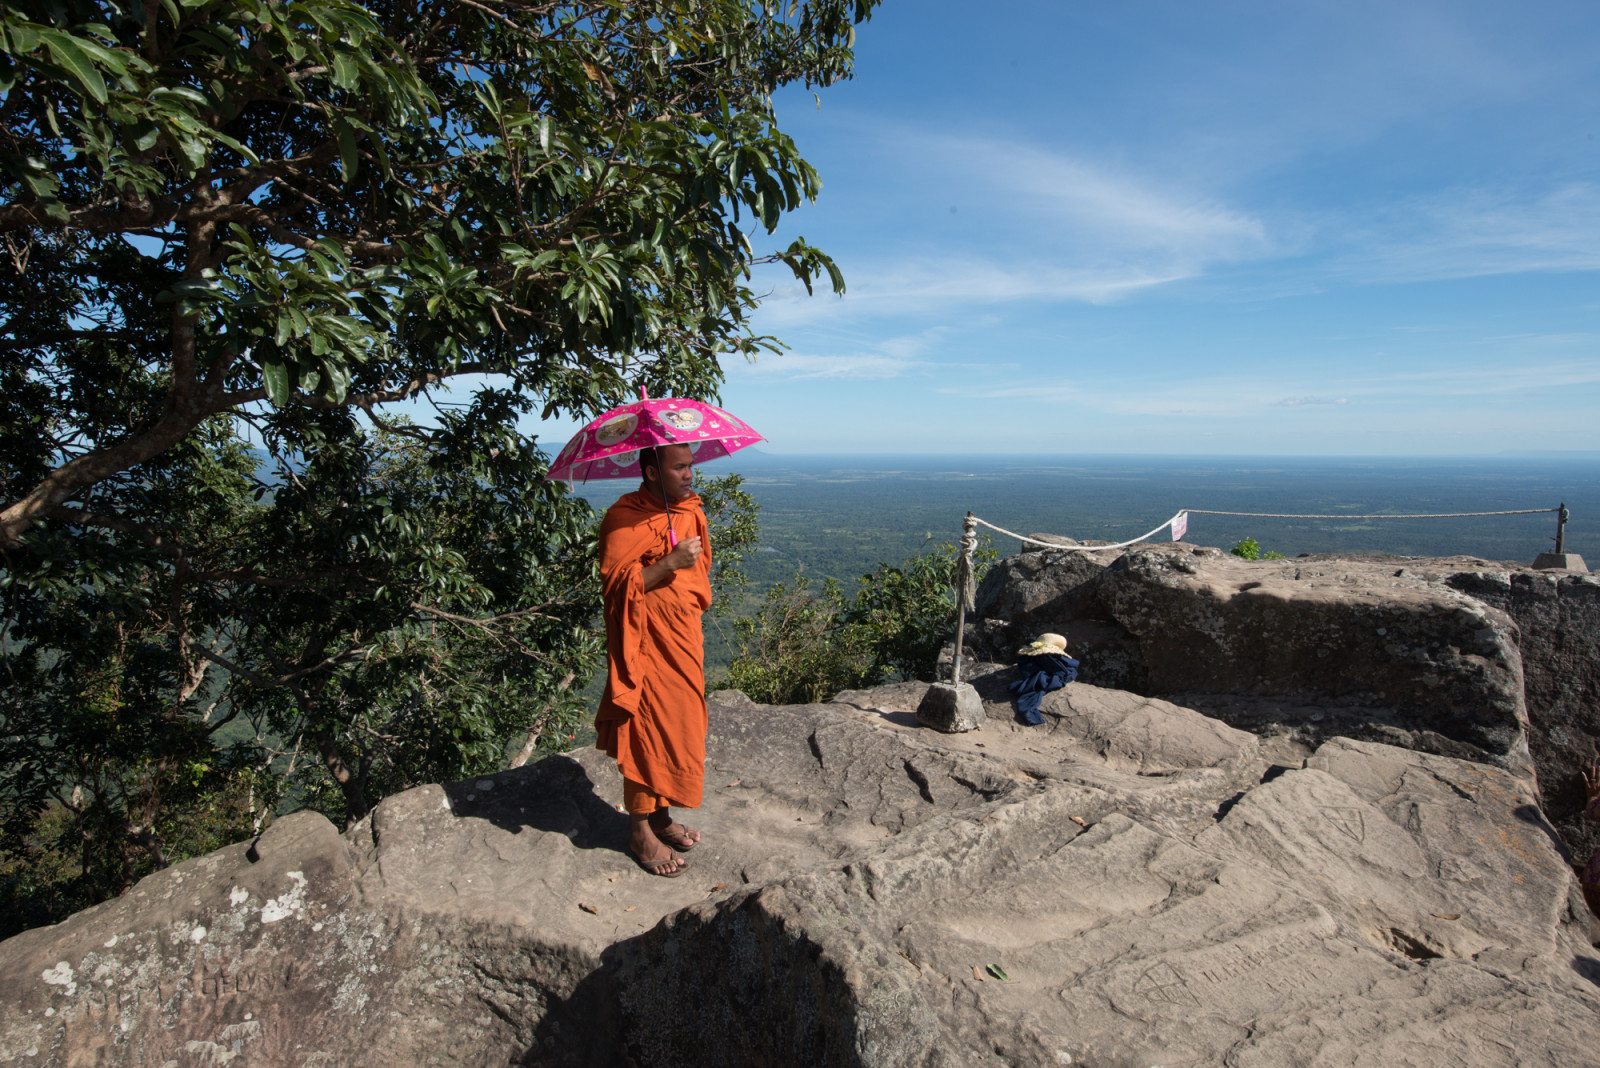 cambodia-photo-tours-preah-vihear-temple-monk